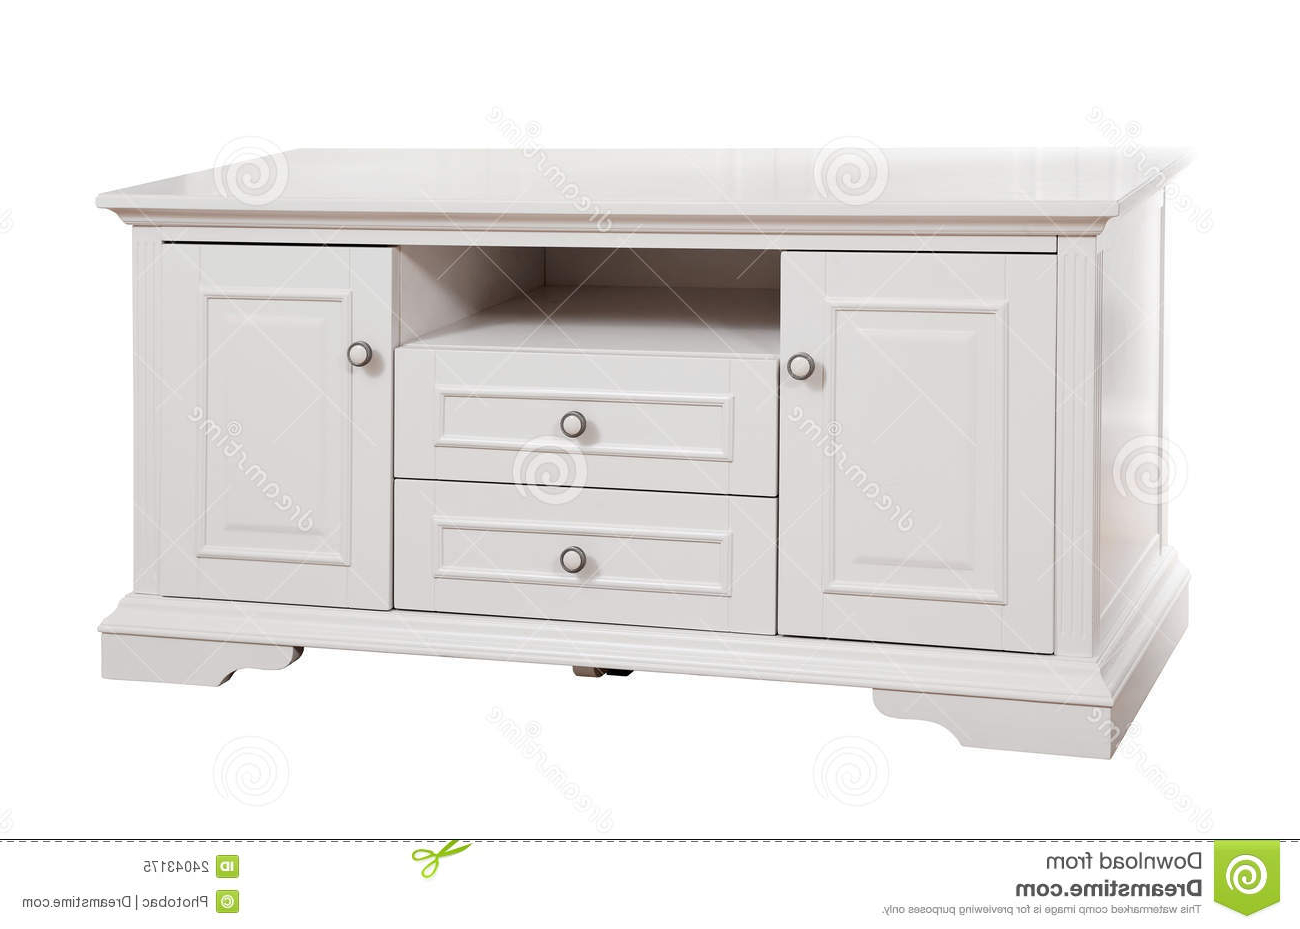 White Wood Tv Stands Throughout Well Known White Wooden (Tv) Stand, With Clipping Path Stock Image – Image Of (View 17 of 20)